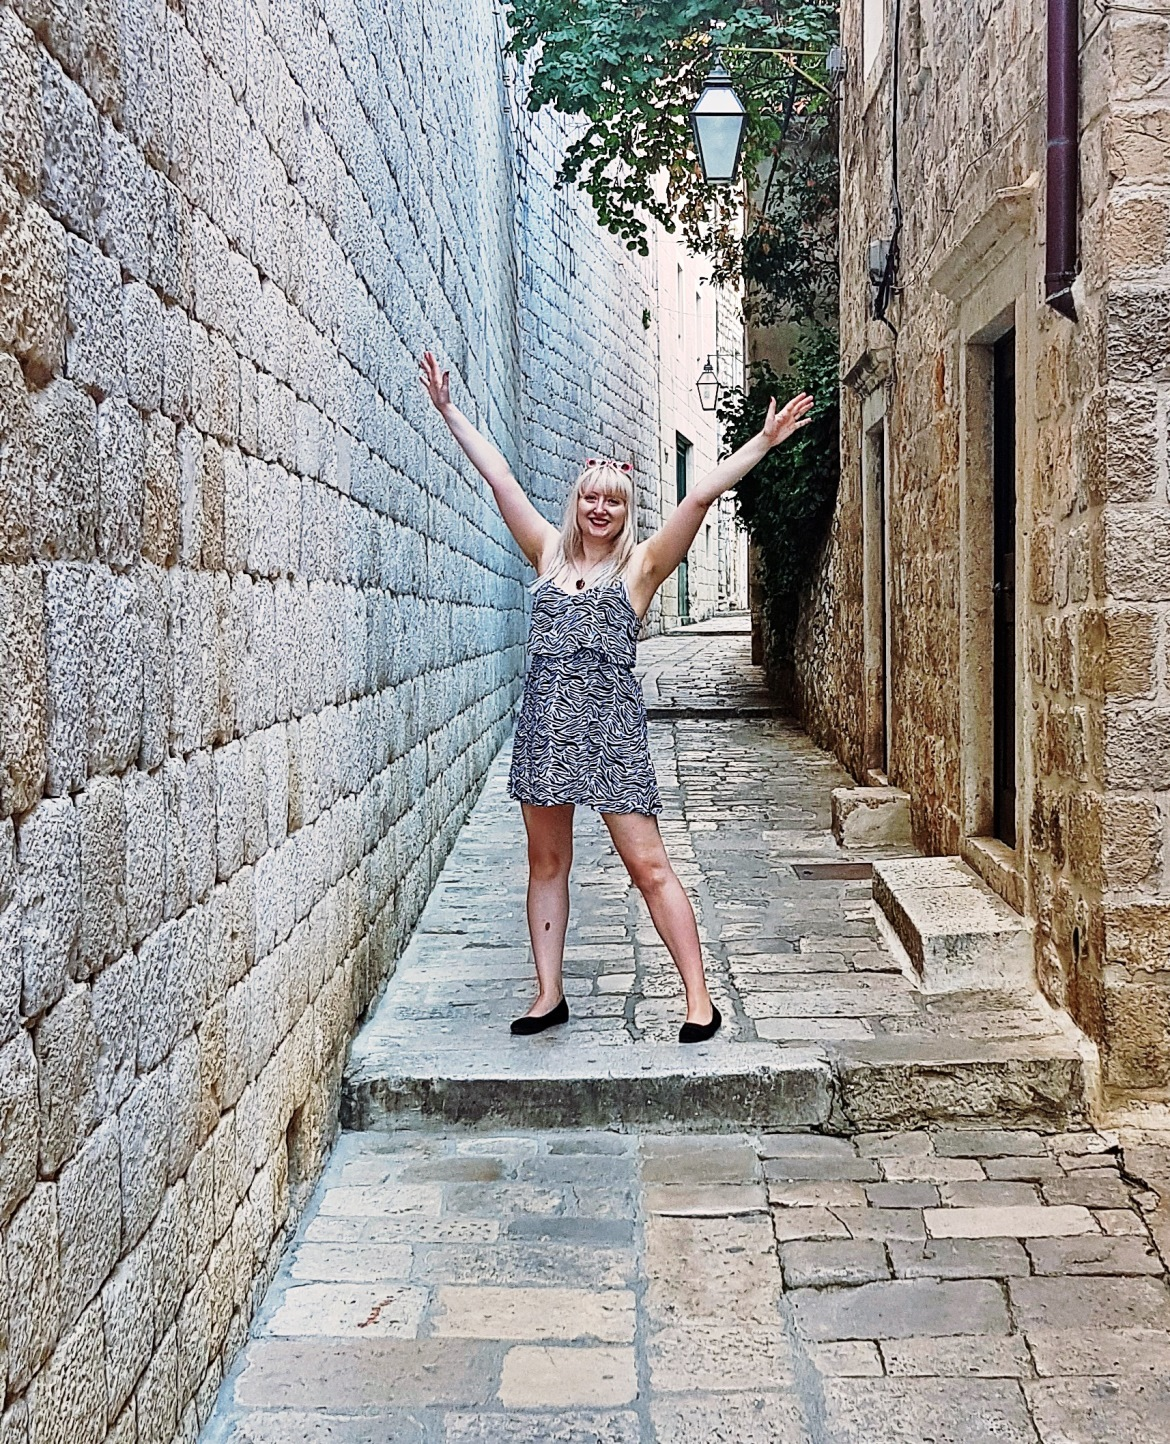 Exploring the Old Town - Sightseeing in Dubrovnik, Croatia - Top Travel Tips by BeckyBecky Blogs